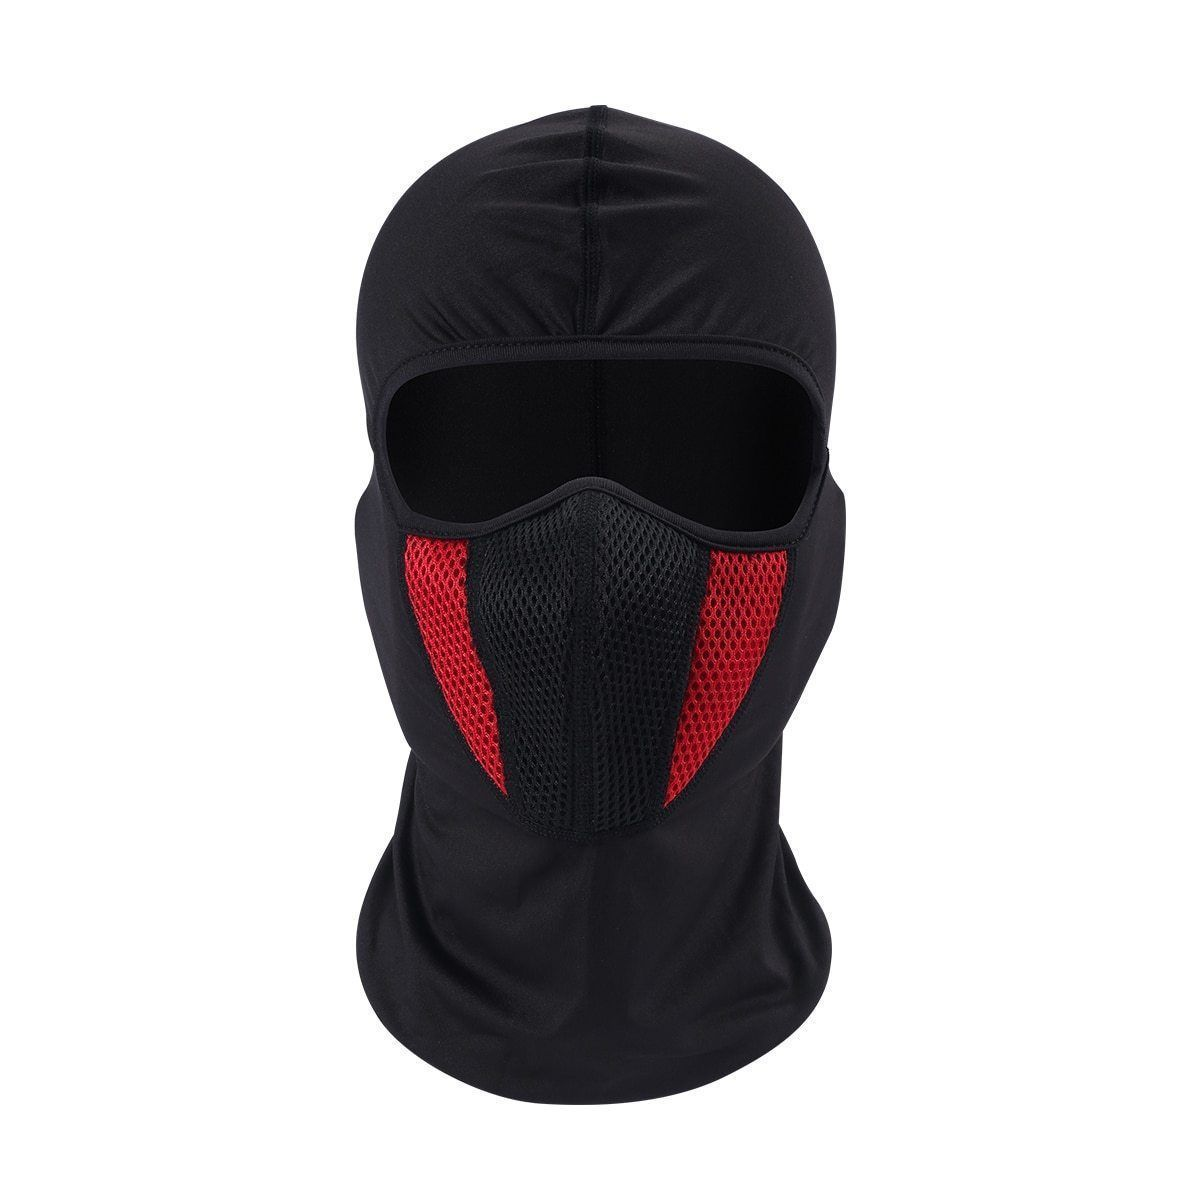 636f767c84093 HEROBIKER Balaclava Moto Face Mask Motorcycle Face Shield Tactical Airsoft  Paintball Cycling Bike Ski Army Helmet